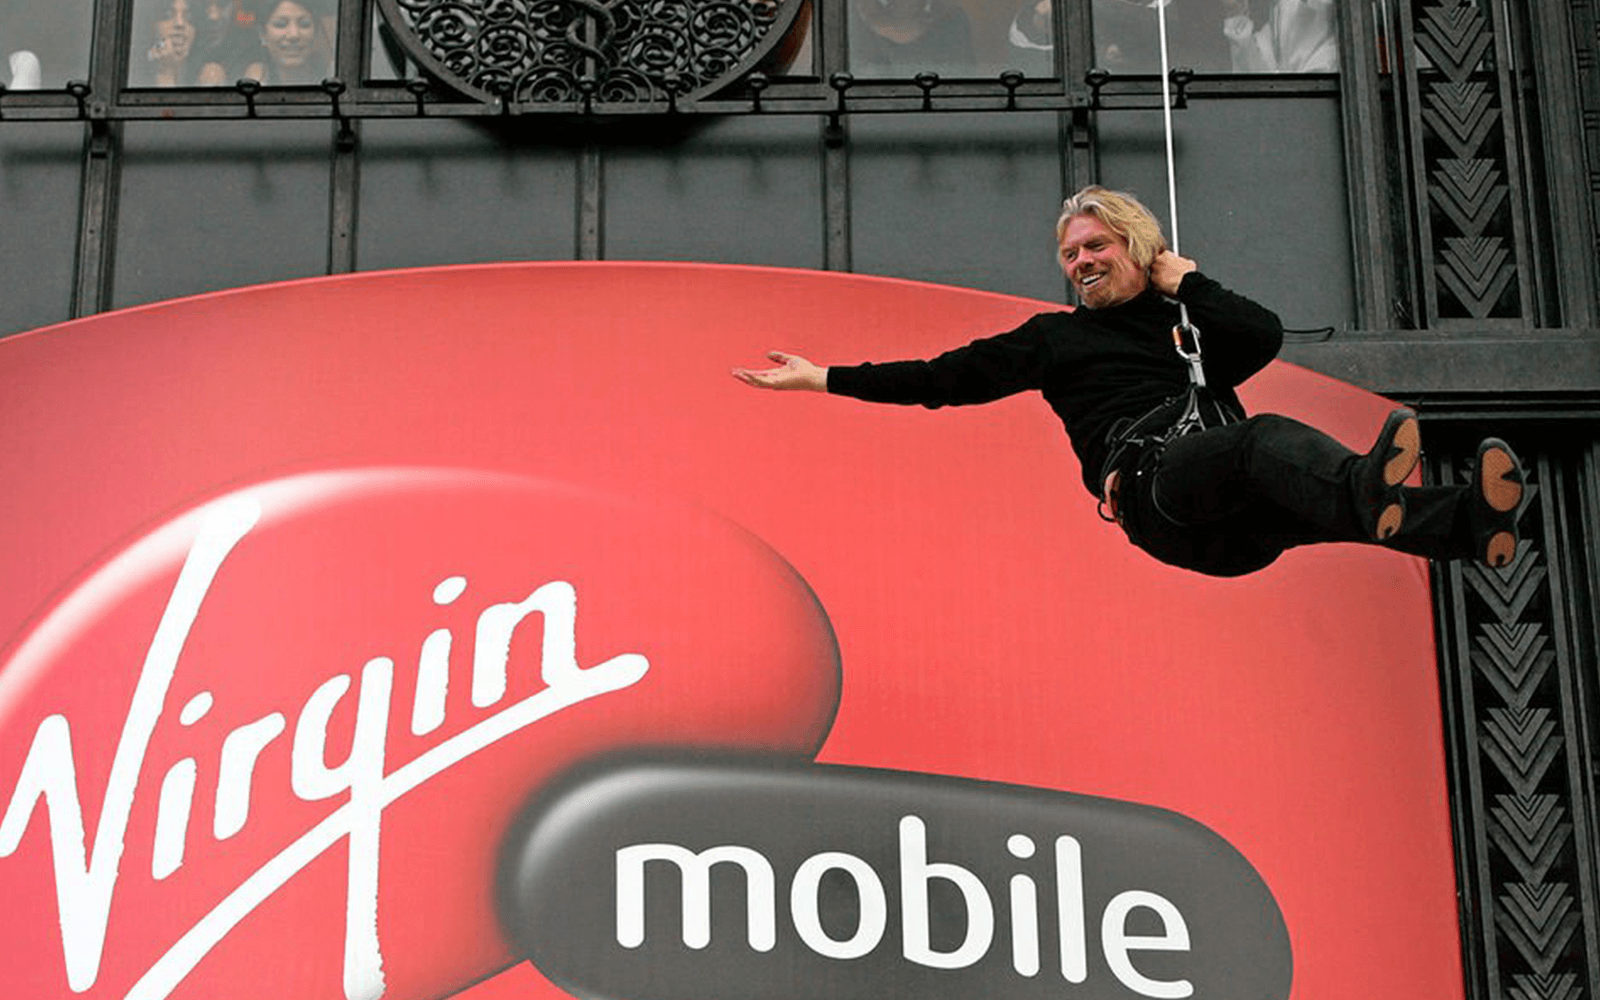 Richard Branson abseiling down a building with a giant Virgin Mobile logo on it